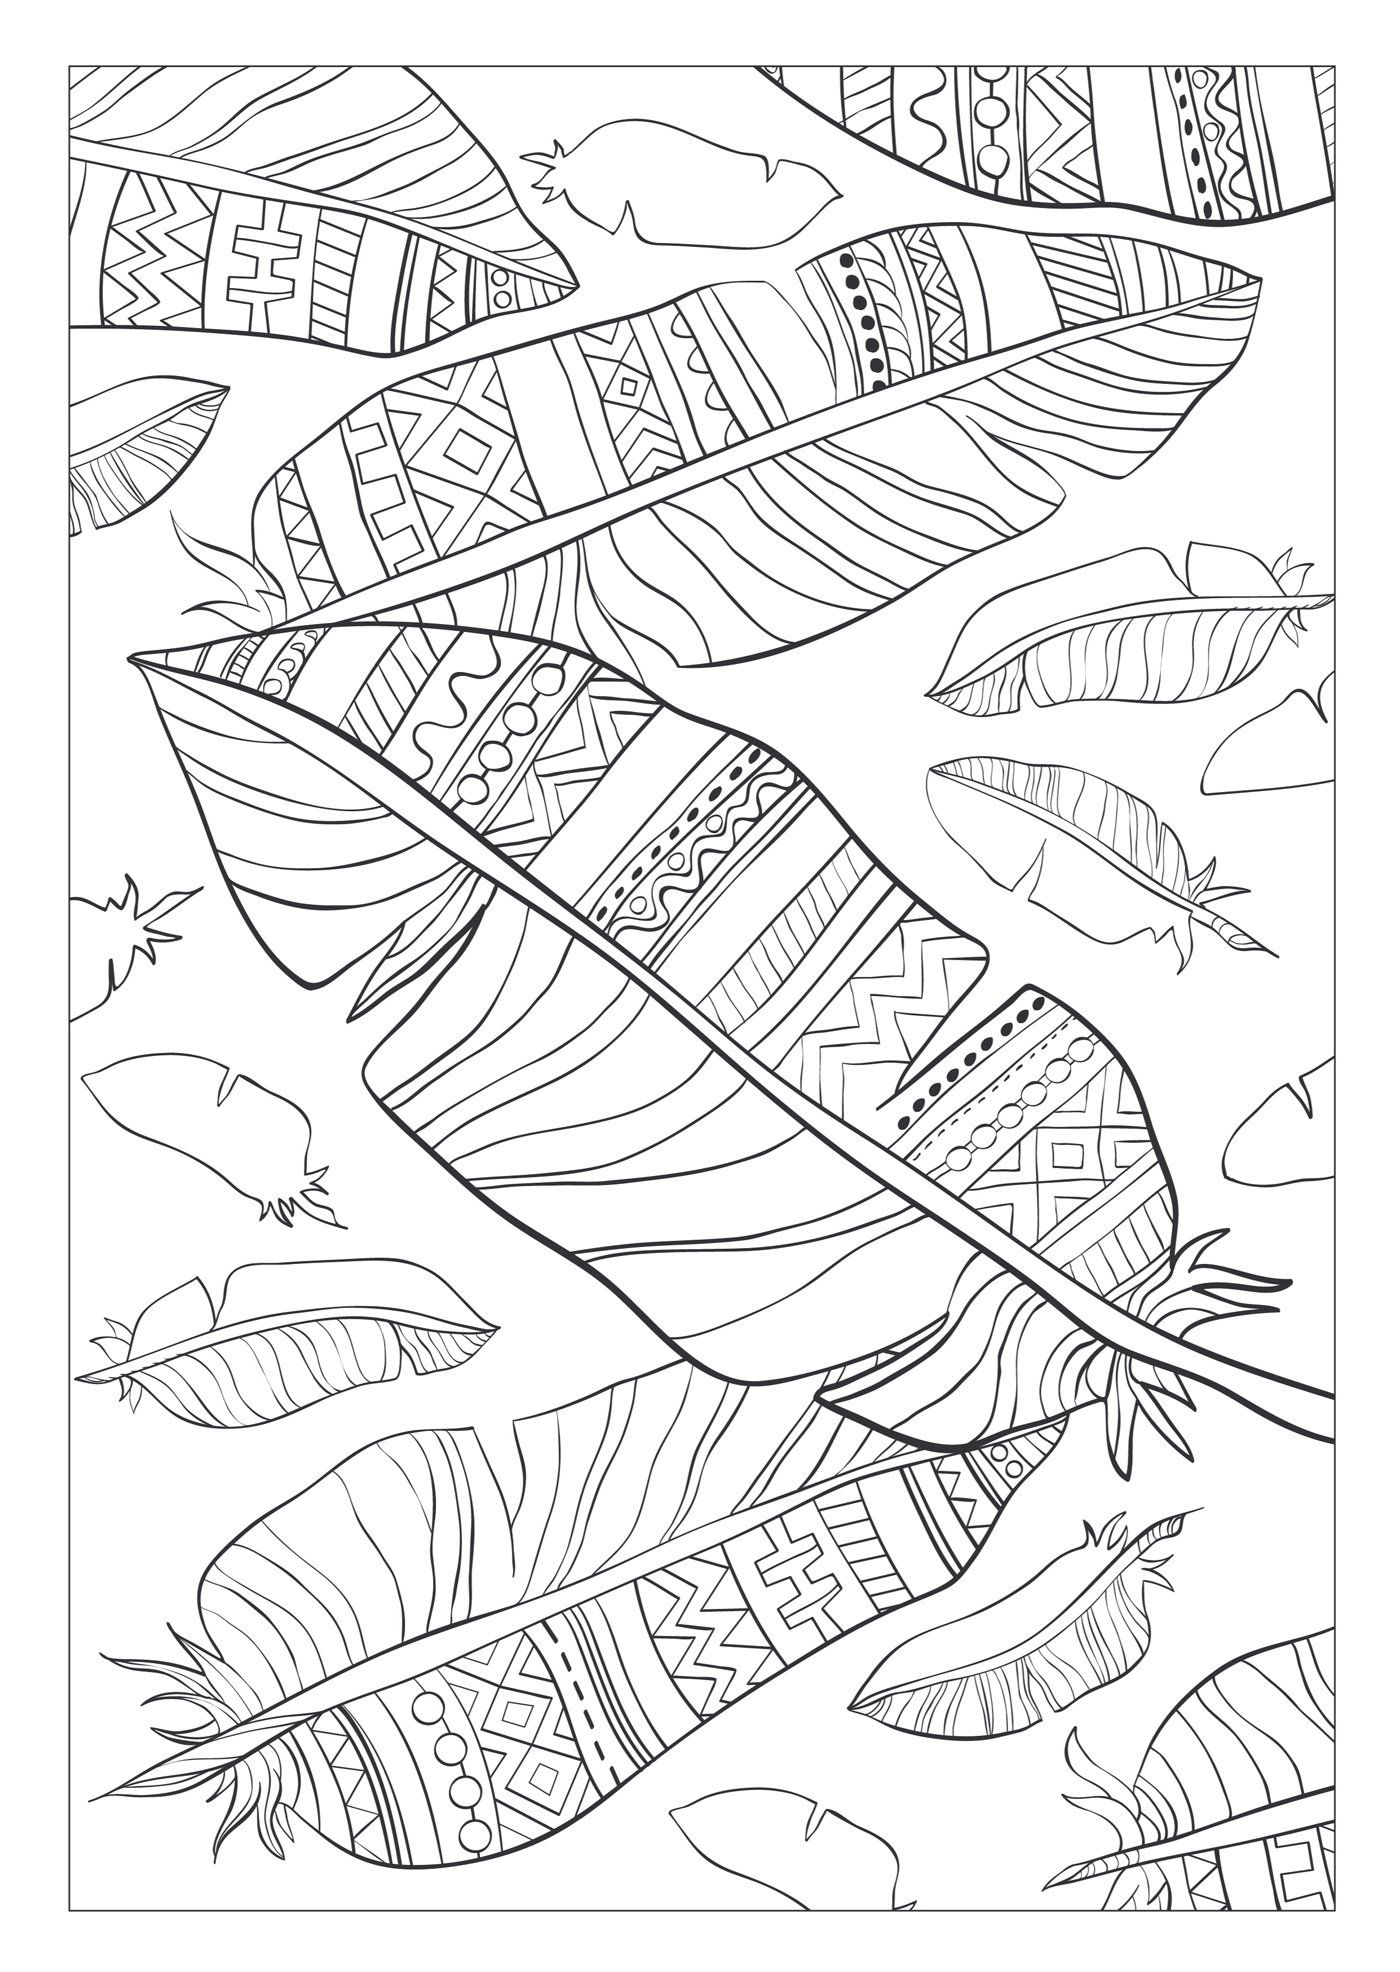 Art therapie mayas et azt ques 100 coloriages anti stress for Harpsichord coloring page